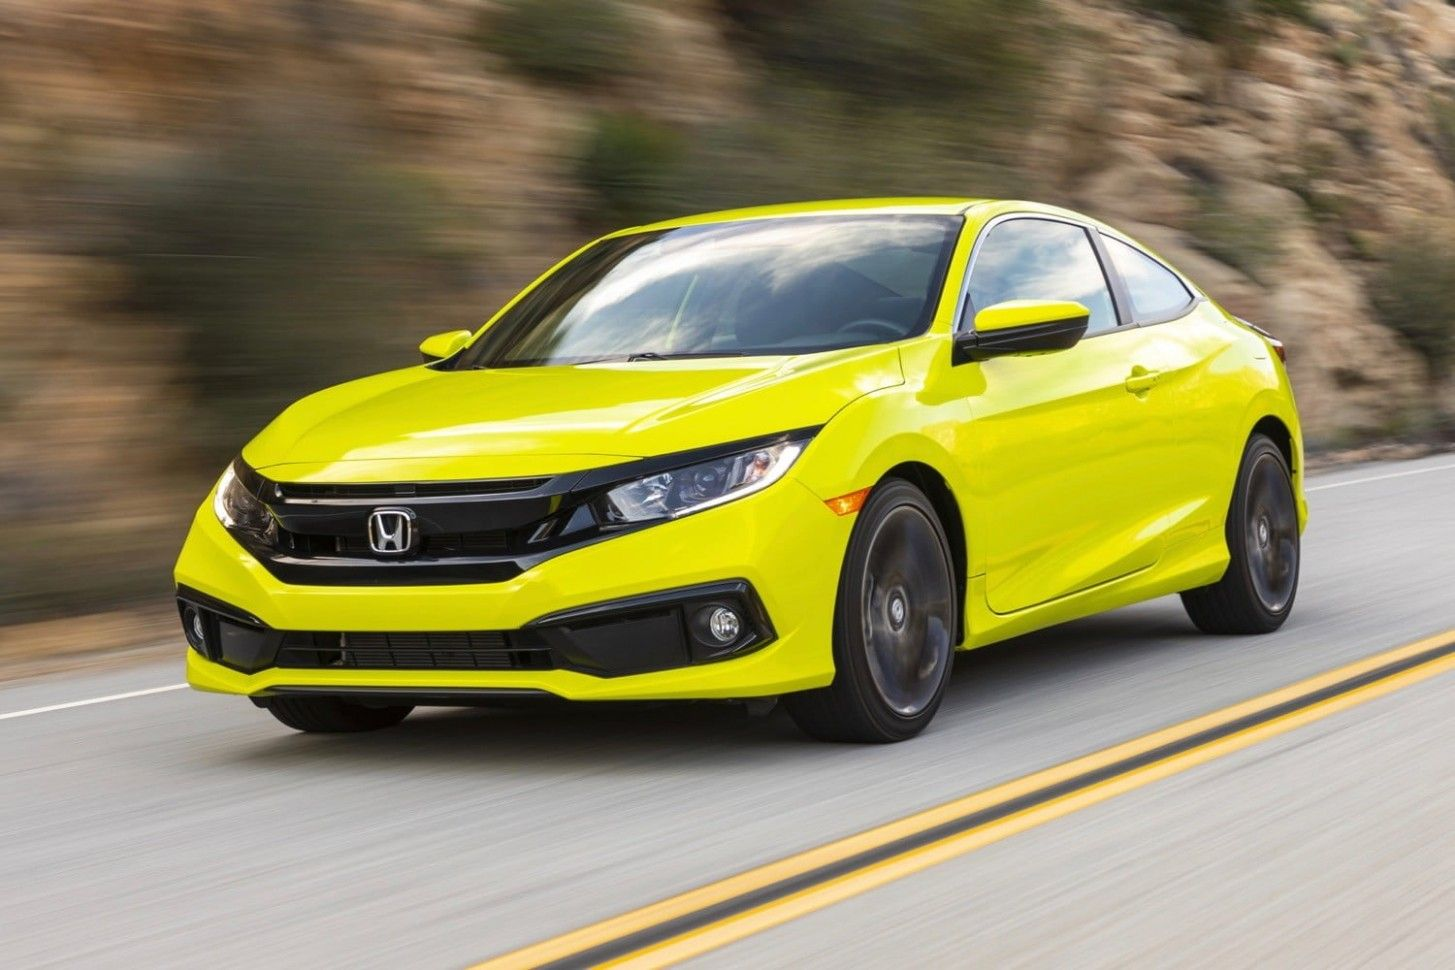 Seven Doubts About 2020 Honda Accord Coupe Design You Should Clarify